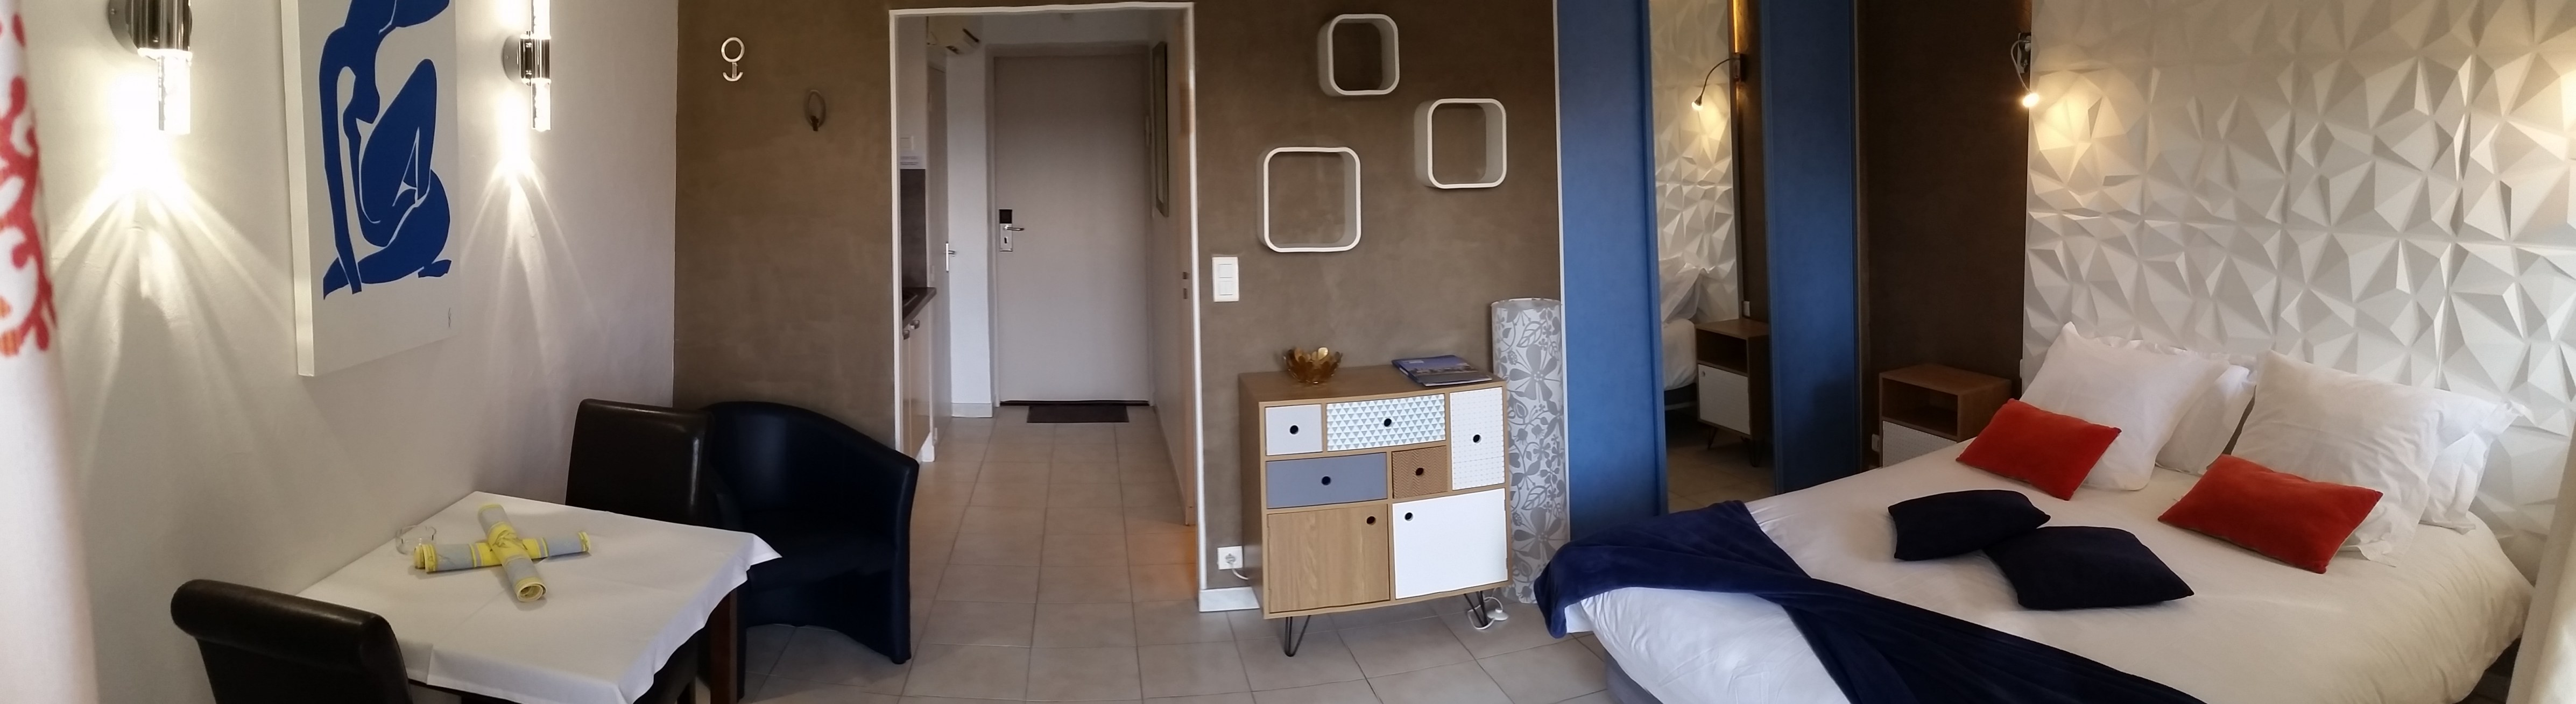 pano_chambres_Matisse_guest_house_fréjus_stRaphael_var_boulouis